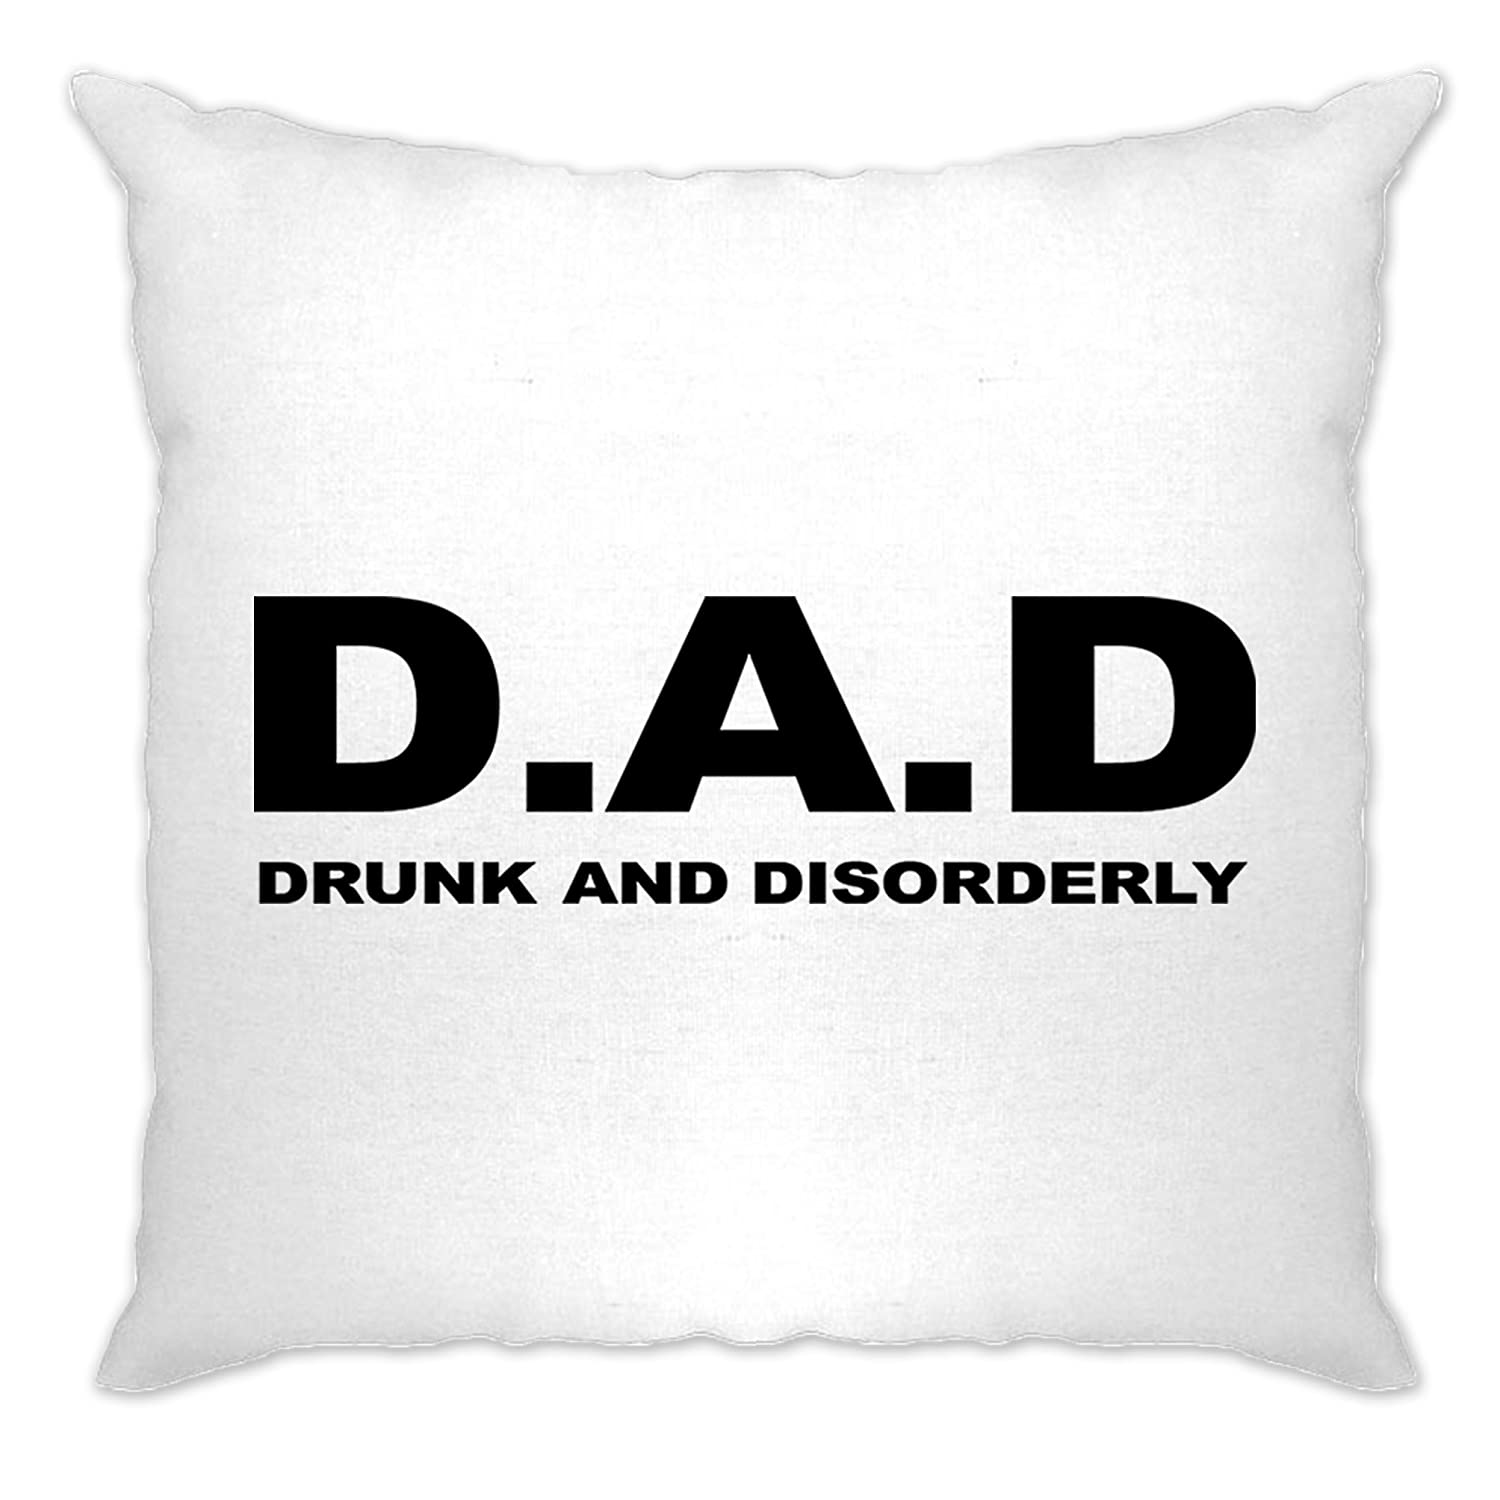 Fathers Day Cushion Cover Sofa Home DAD D.A.D. Drunk and Disorderly Daddy Pun Novelty Print Design Humour Love Family Cool Funny Gift Present Tim And Ted A-CC-00074-NAT